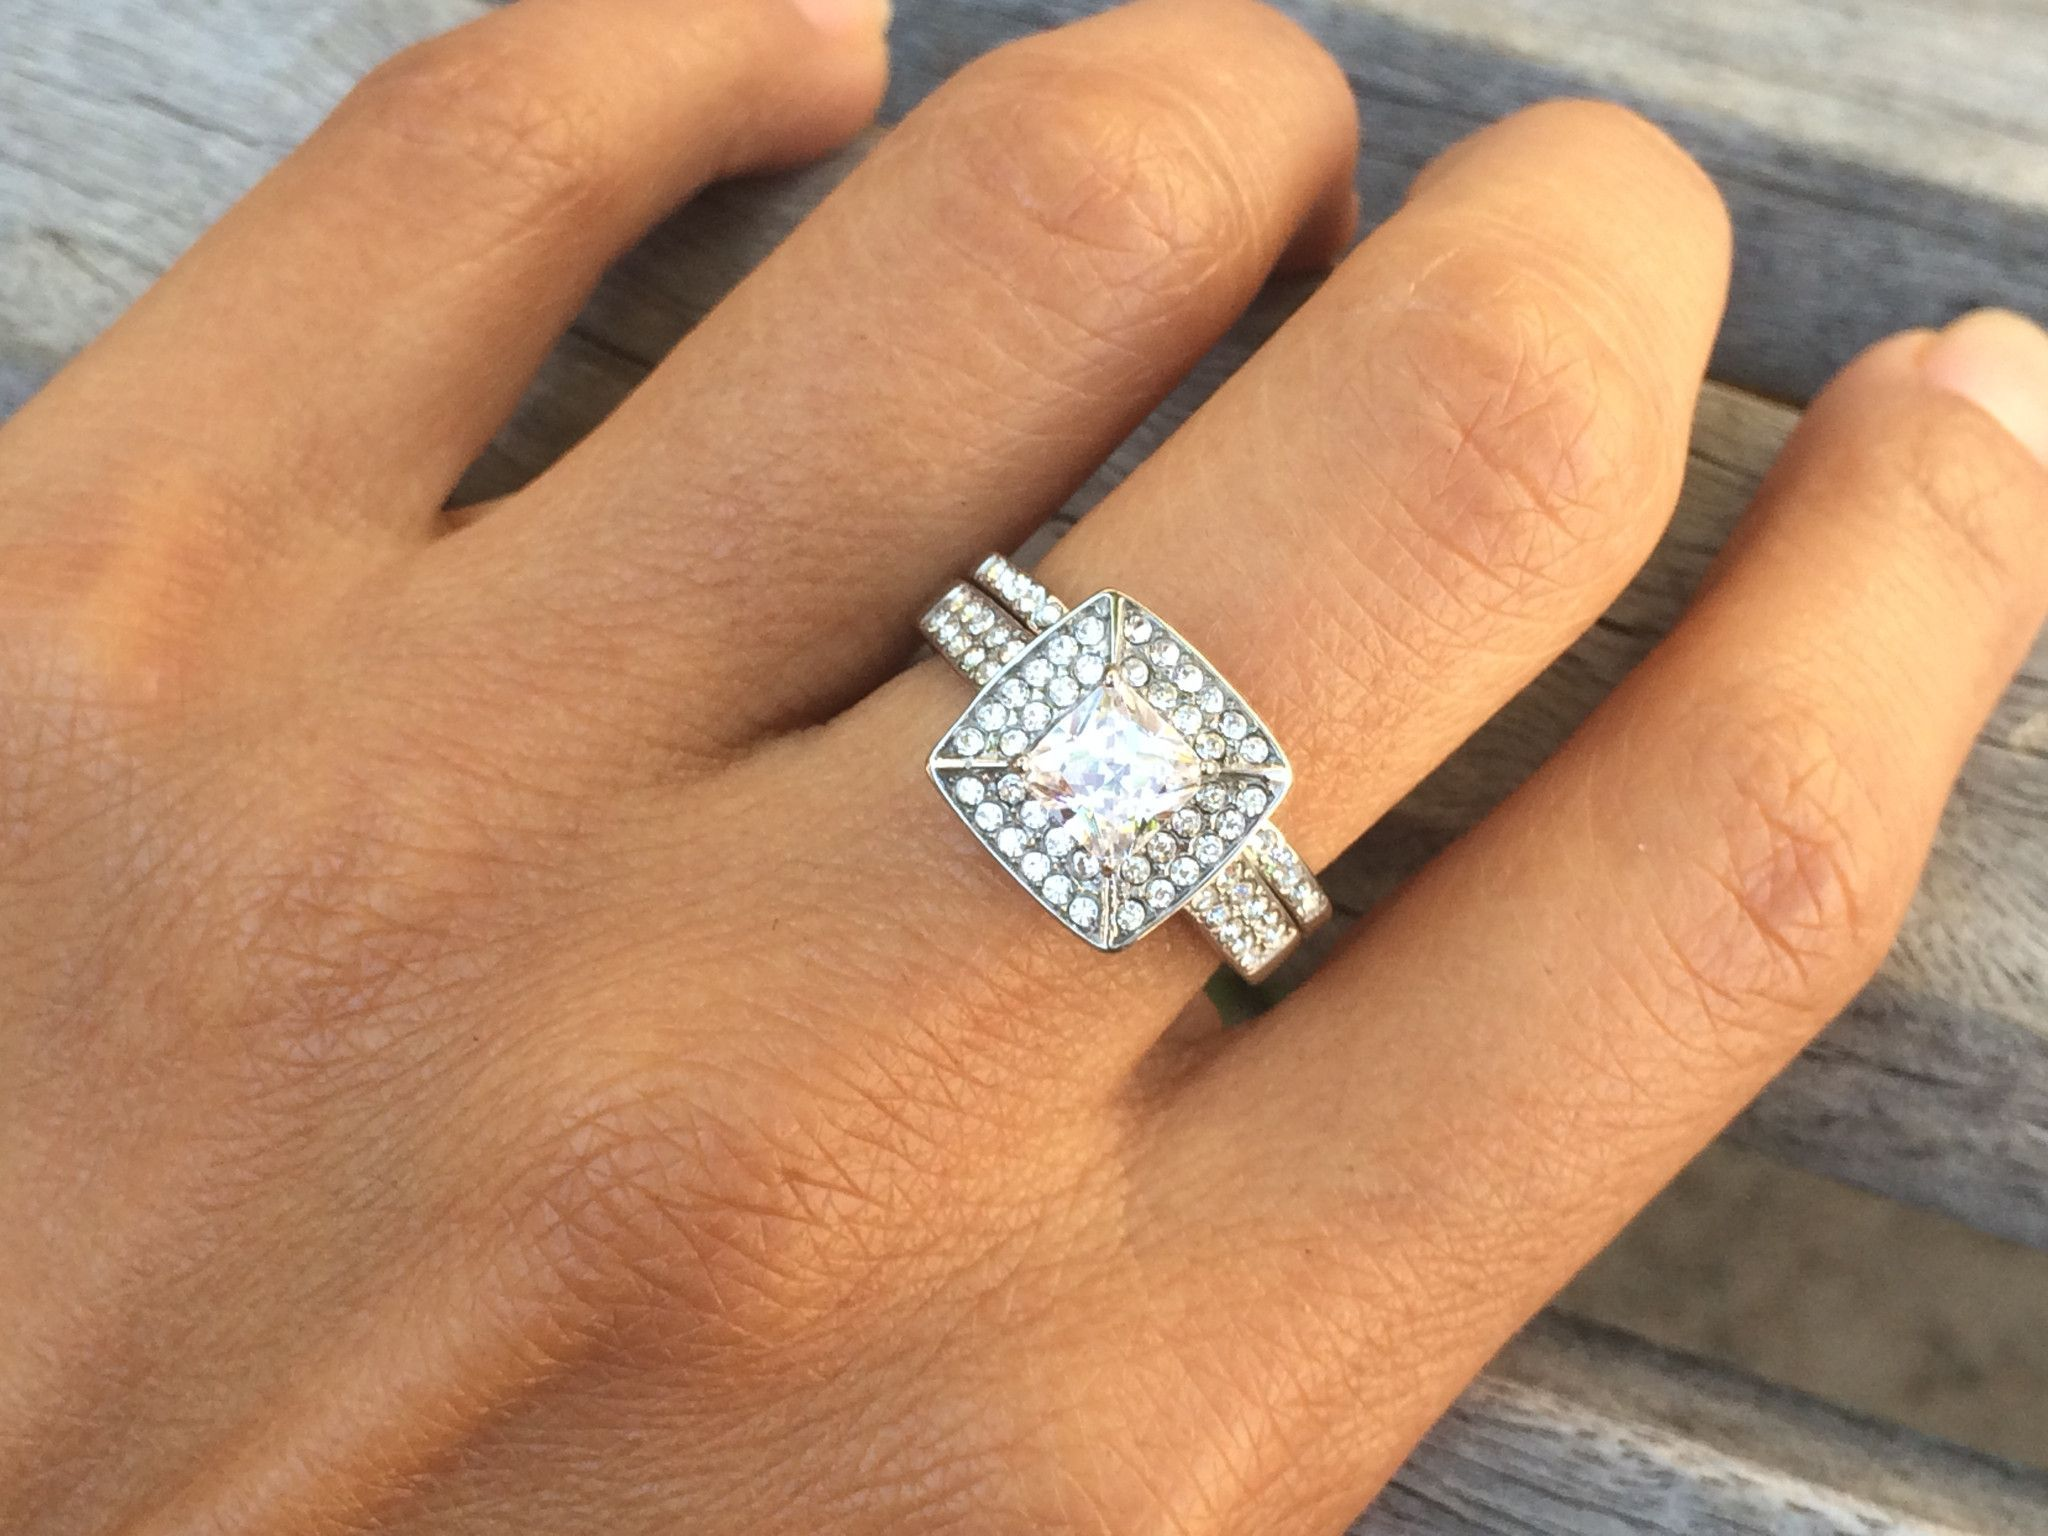 This brand new women's wedding ring set is made of non